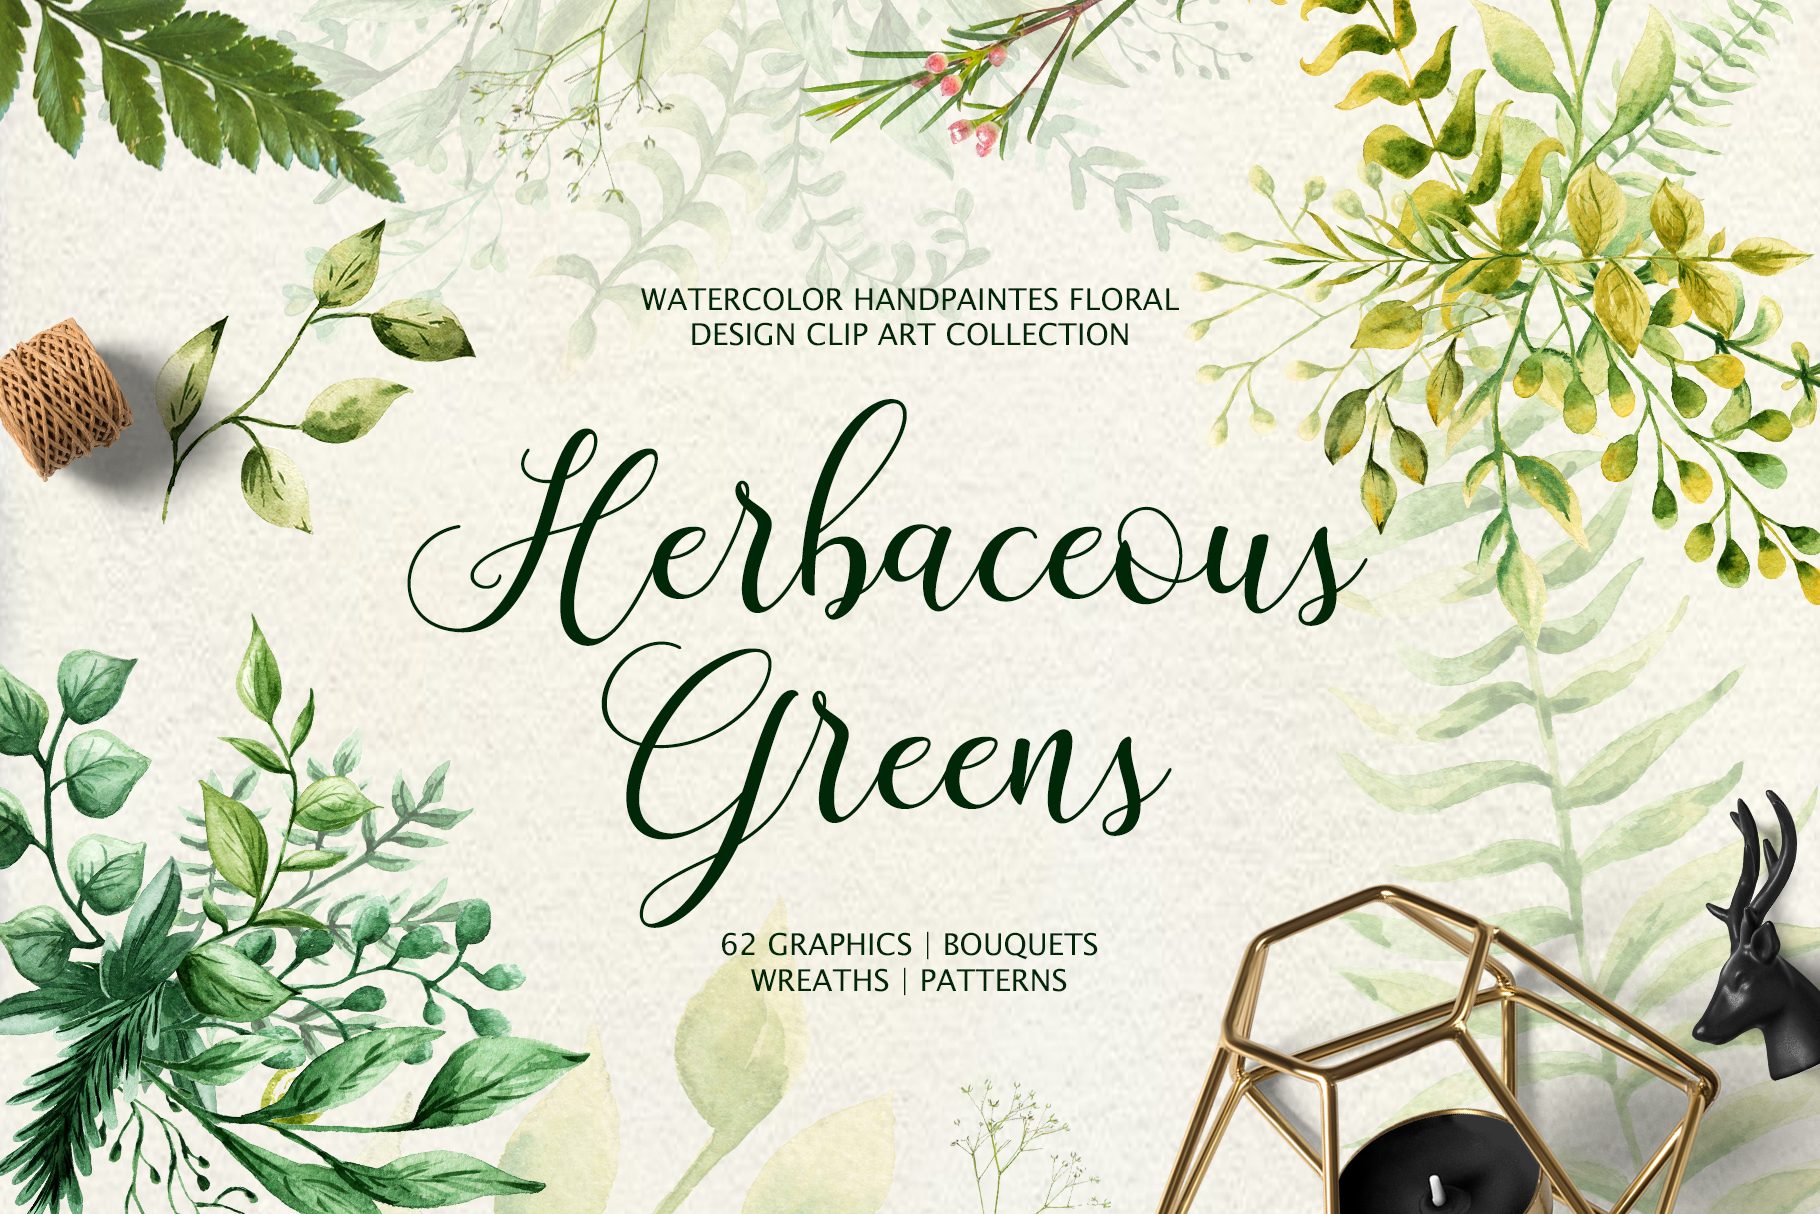 Herbaceous Greens Watercolor Set Graphic By tregubova.jul